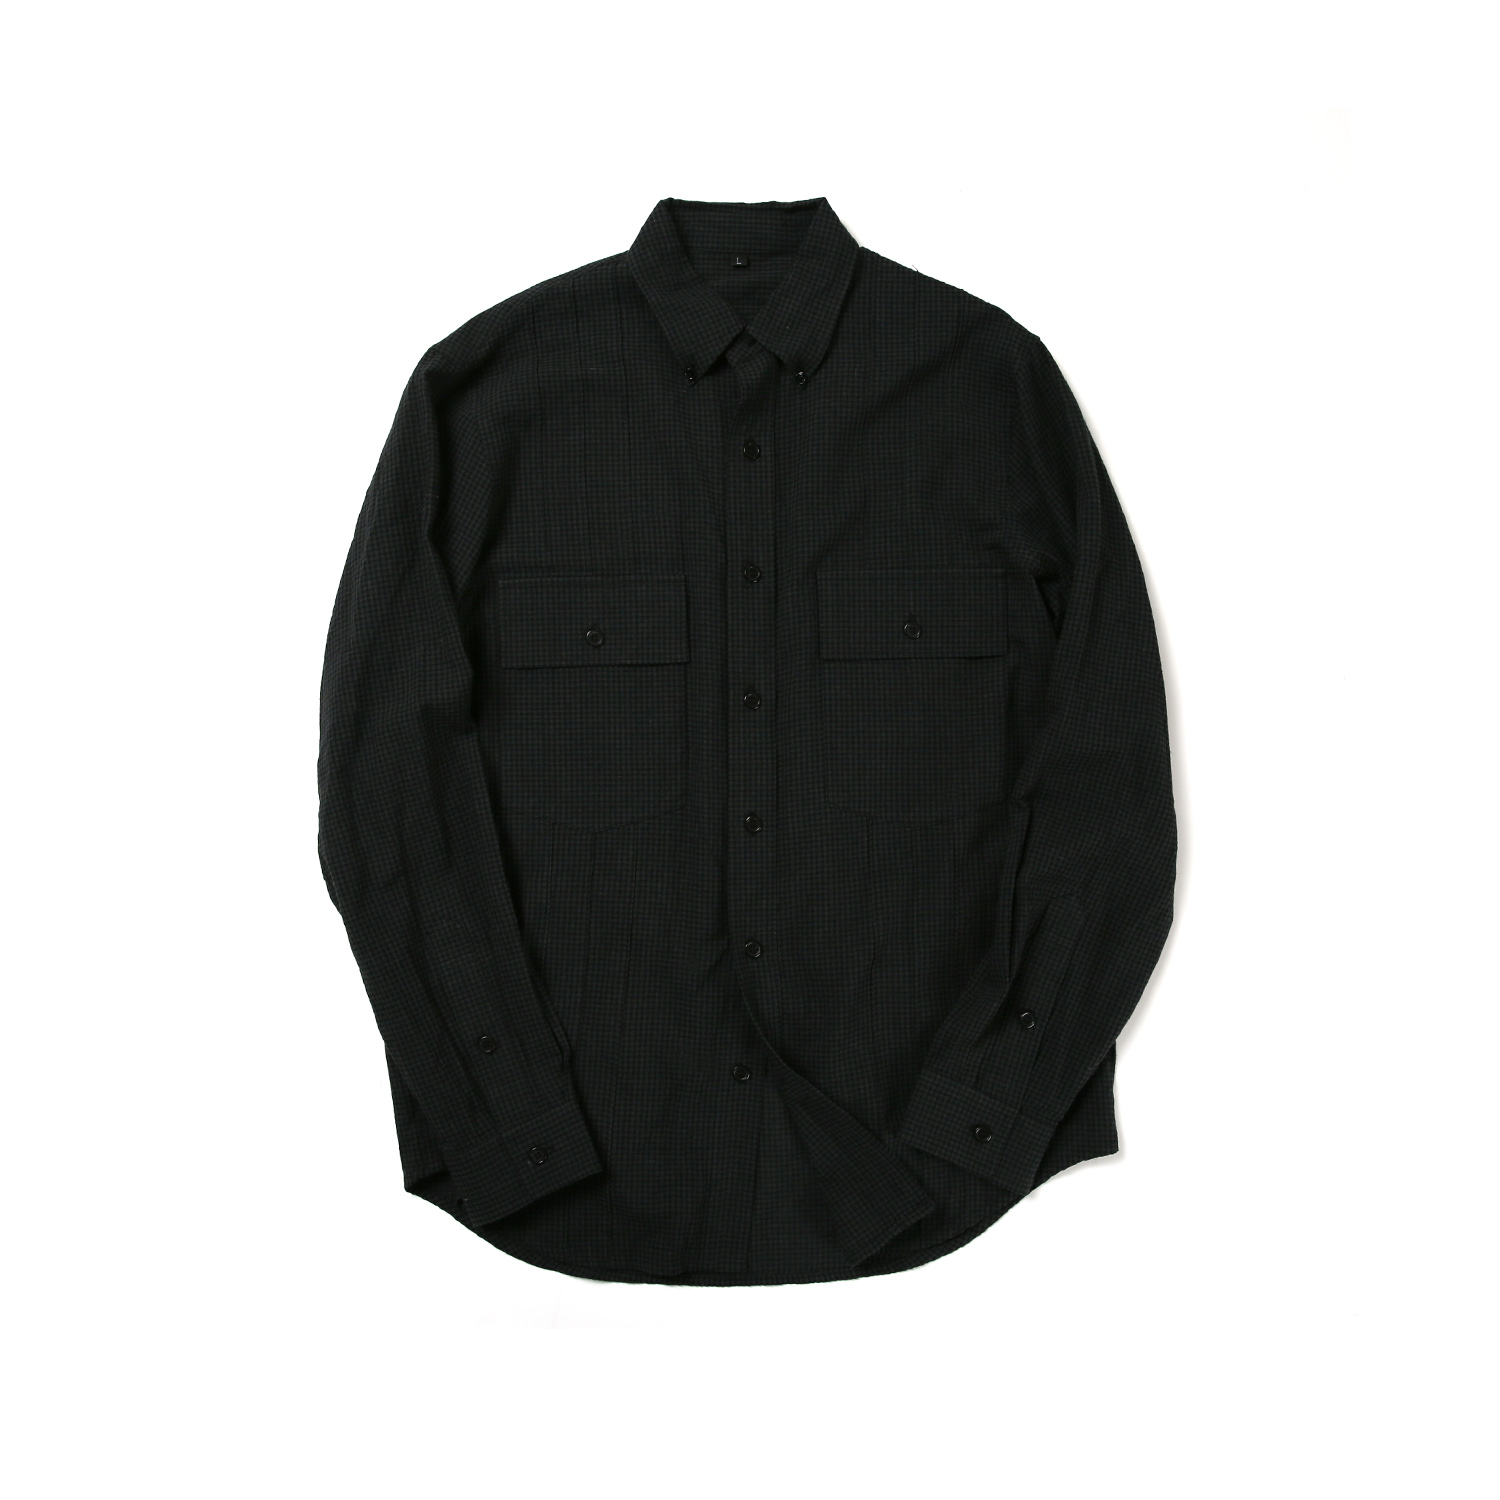 2 POCKET TUXEDO B.D SHIRT (BLACK GINGHAM)